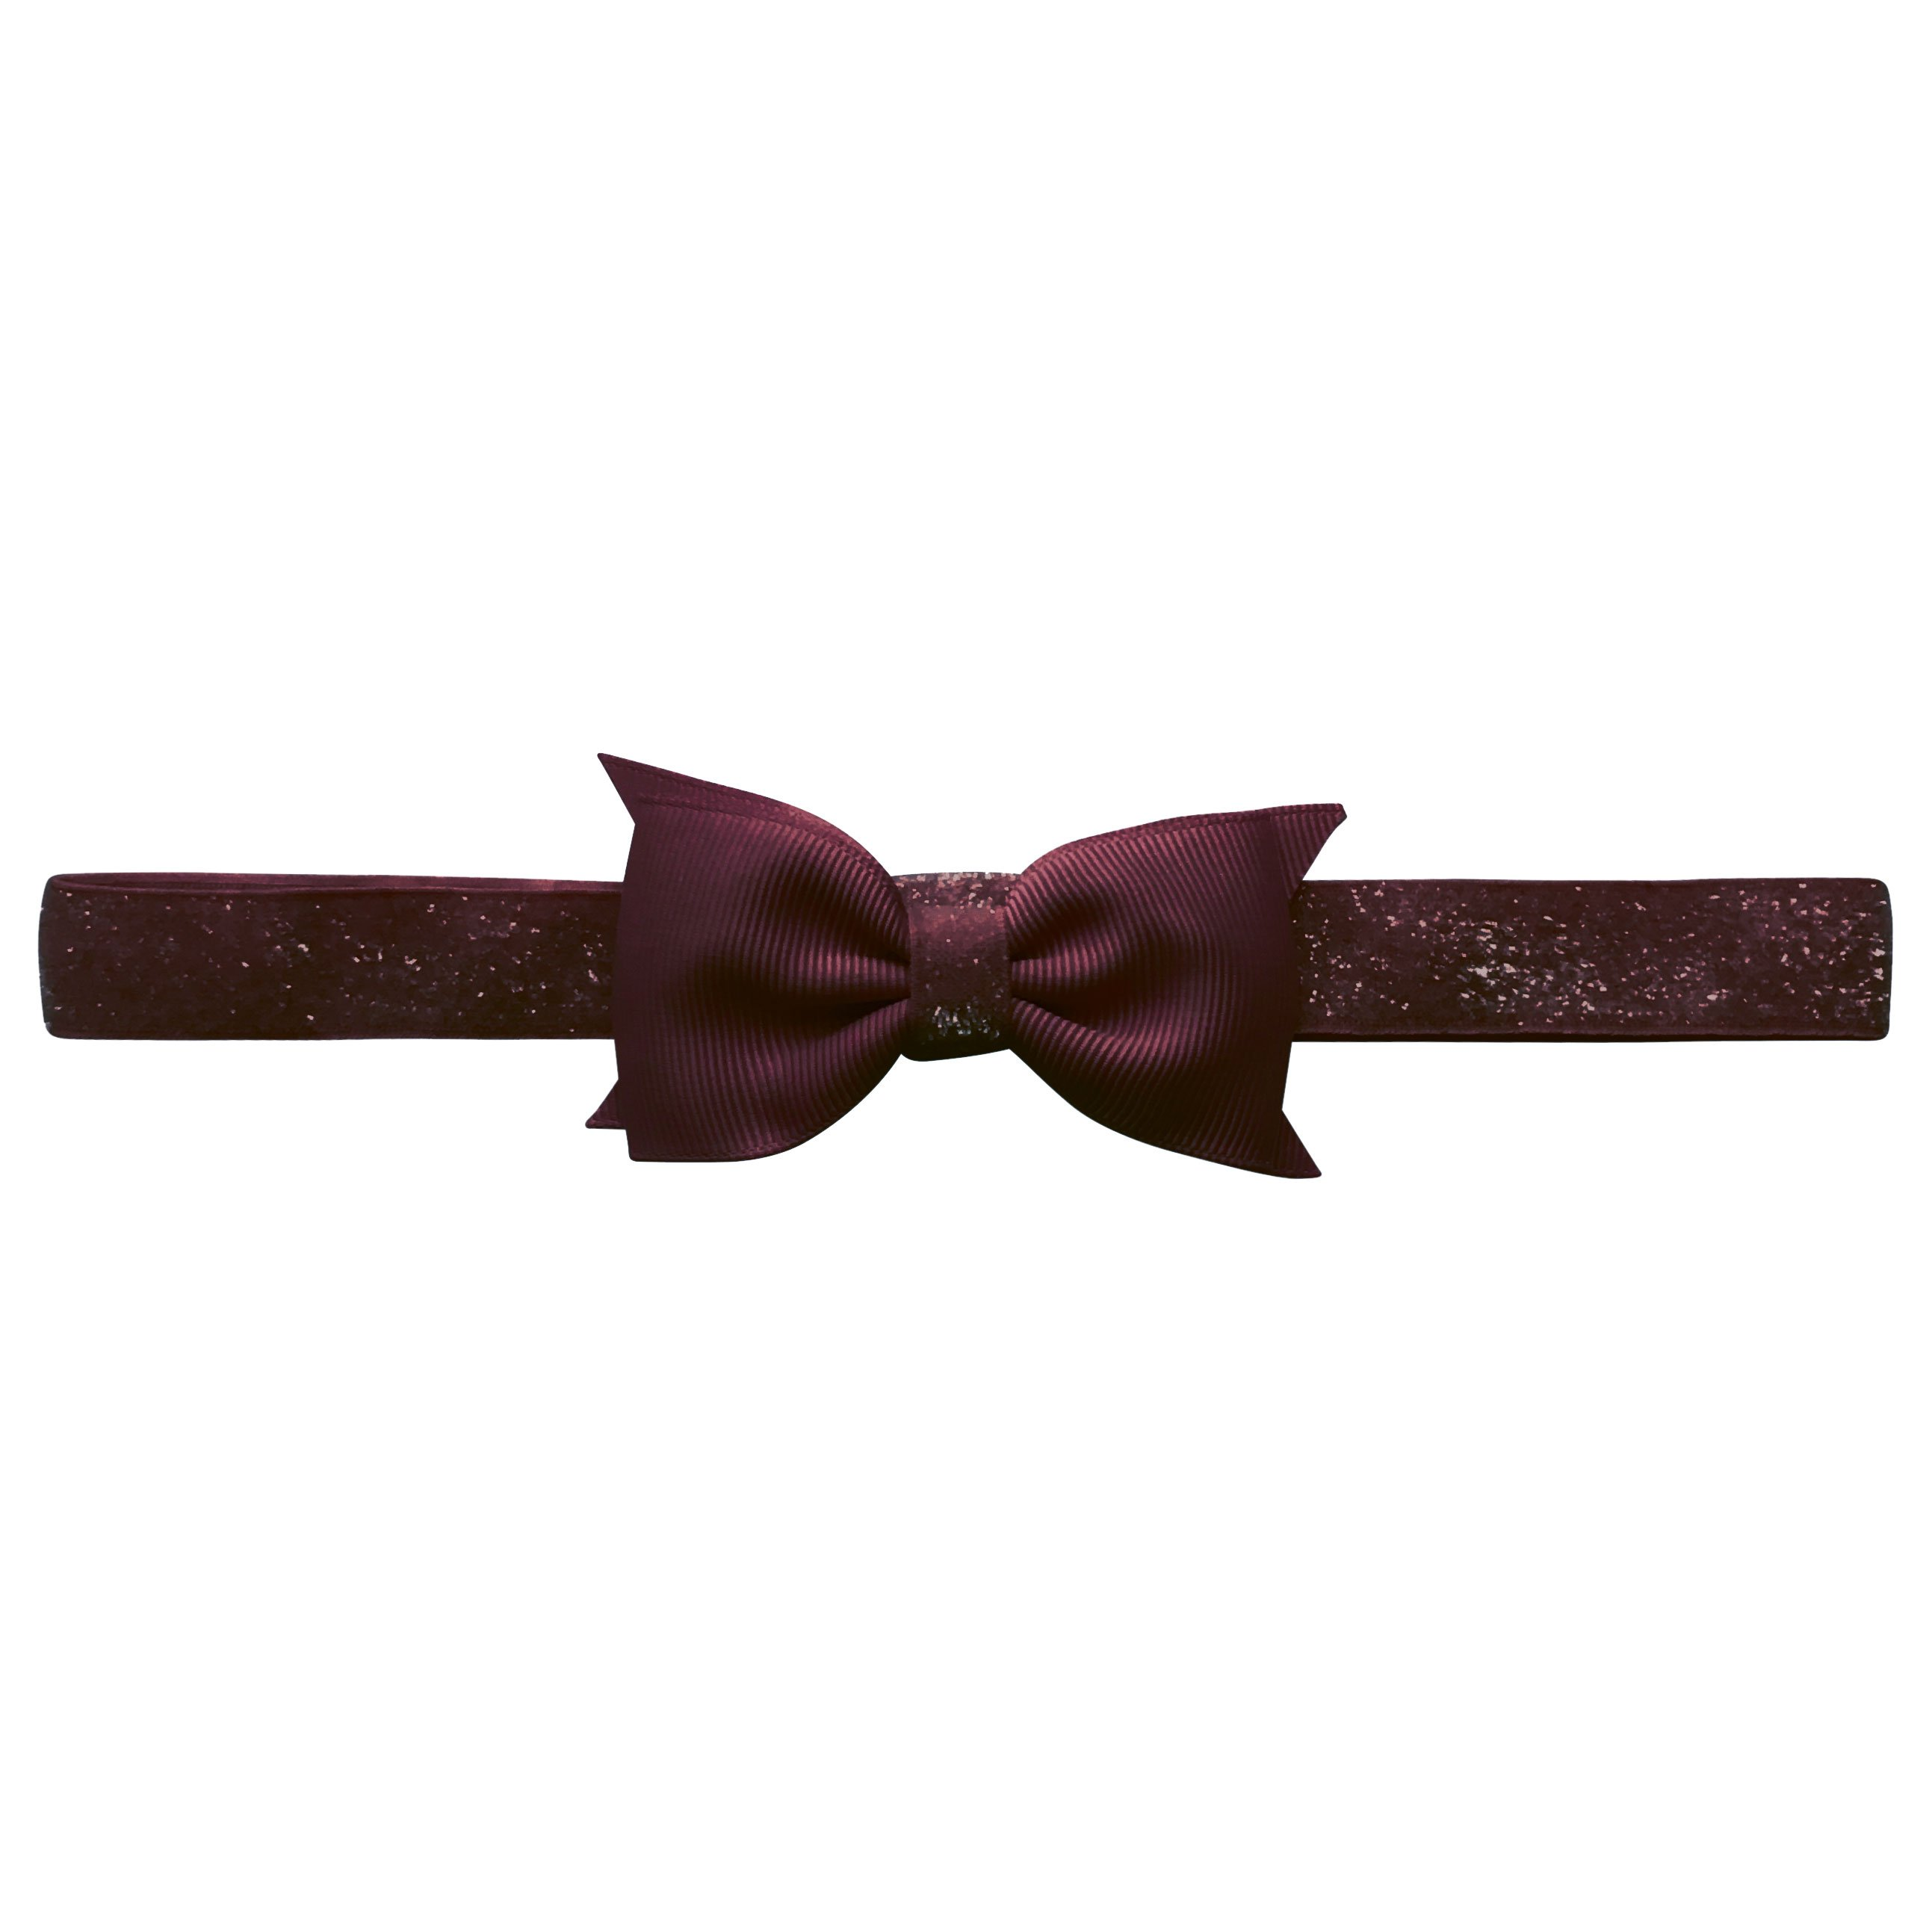 Image of   Double Bowtie Milledeux bow - elastic hairband - raisin colored glitter